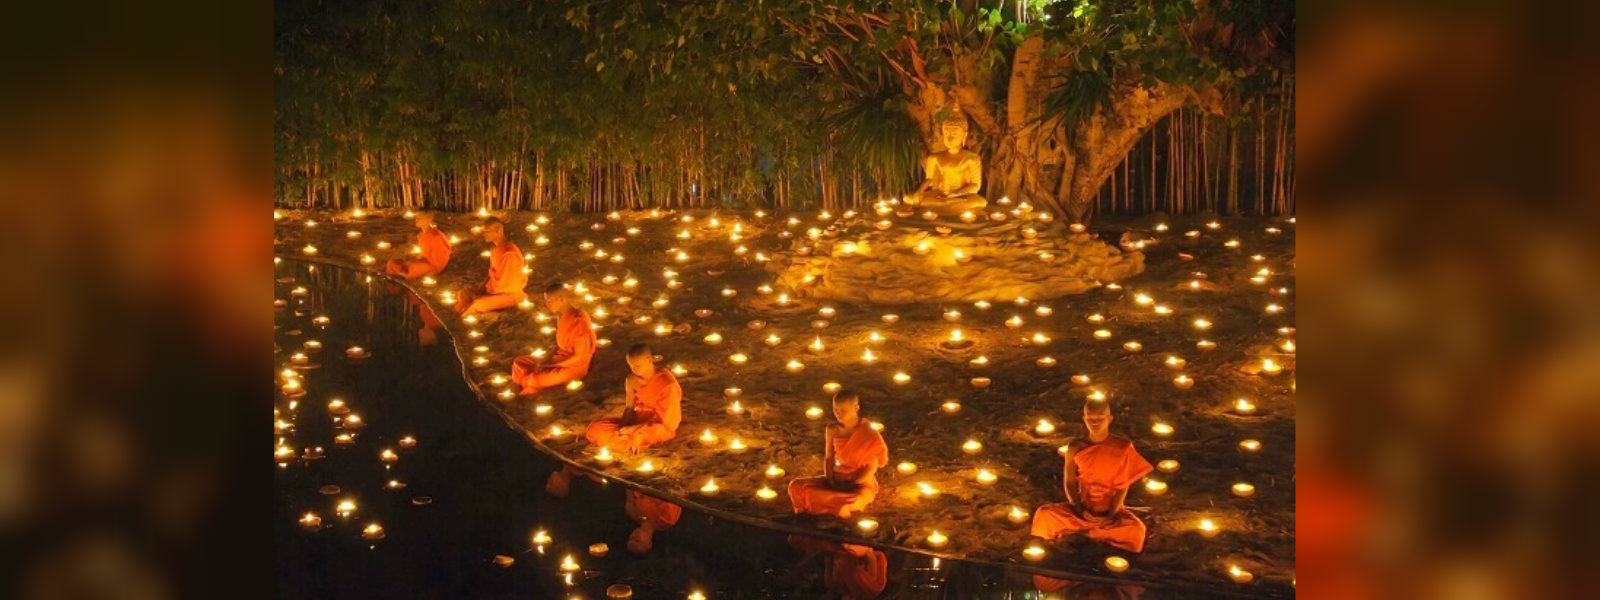 State Vesak ceremony at Temple Trees today